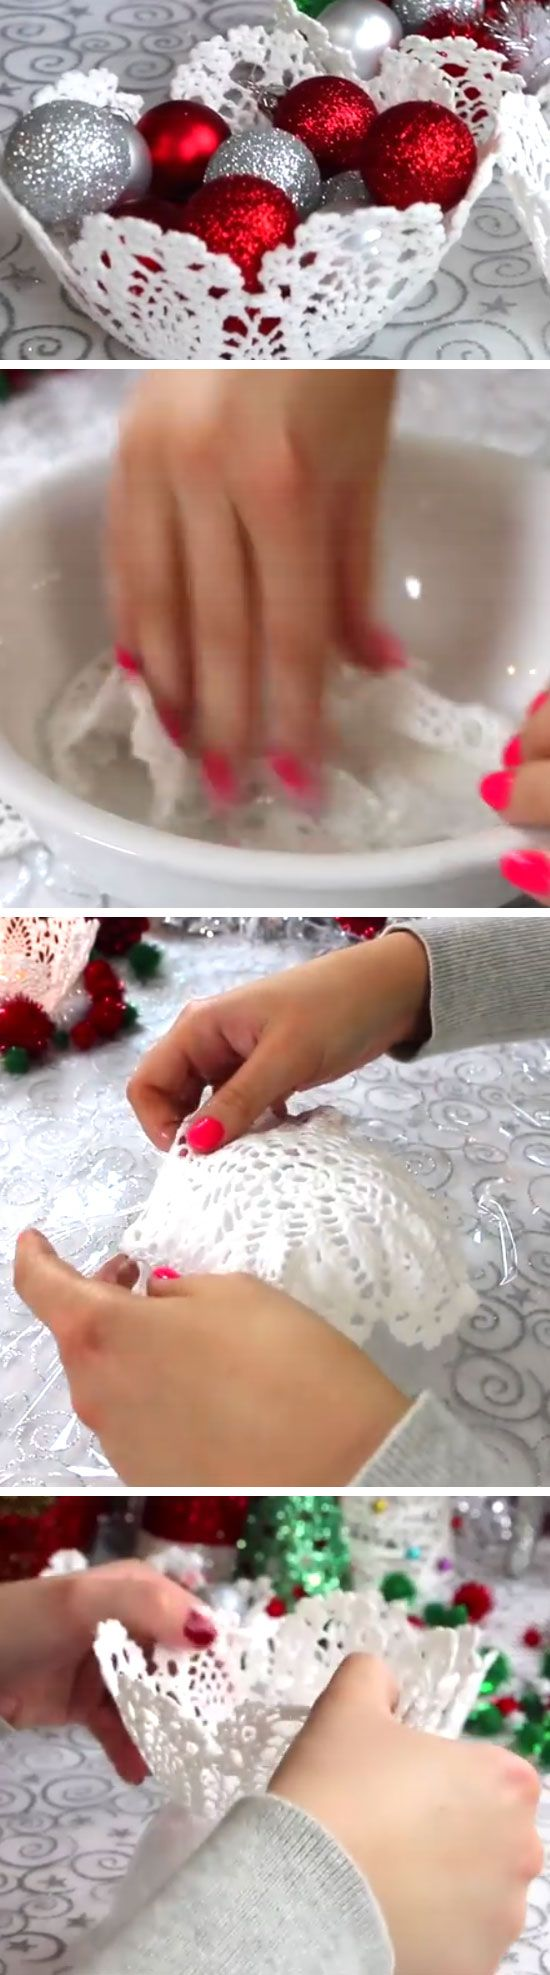 200 Best Christmas Craft Ideas Images On Pinterest